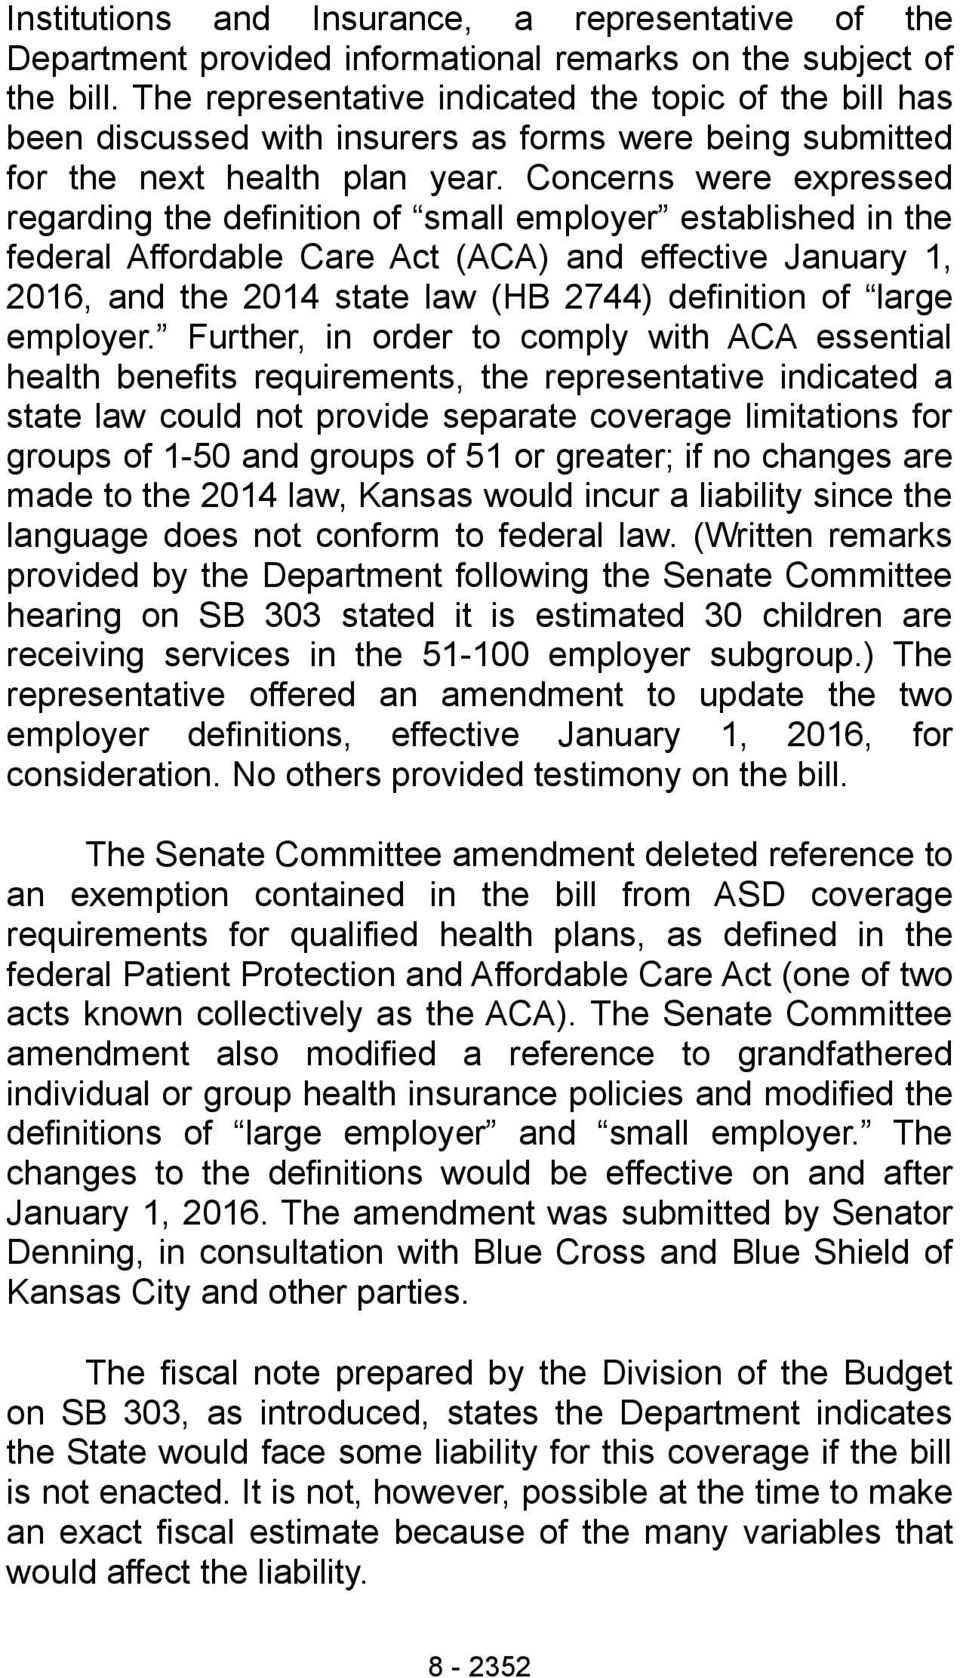 Concerns were expressed regarding the definition of small employer established in the federal Affordable Care Act (ACA) and effective January 1, 2016, and the 2014 state law (HB 2744) definition of